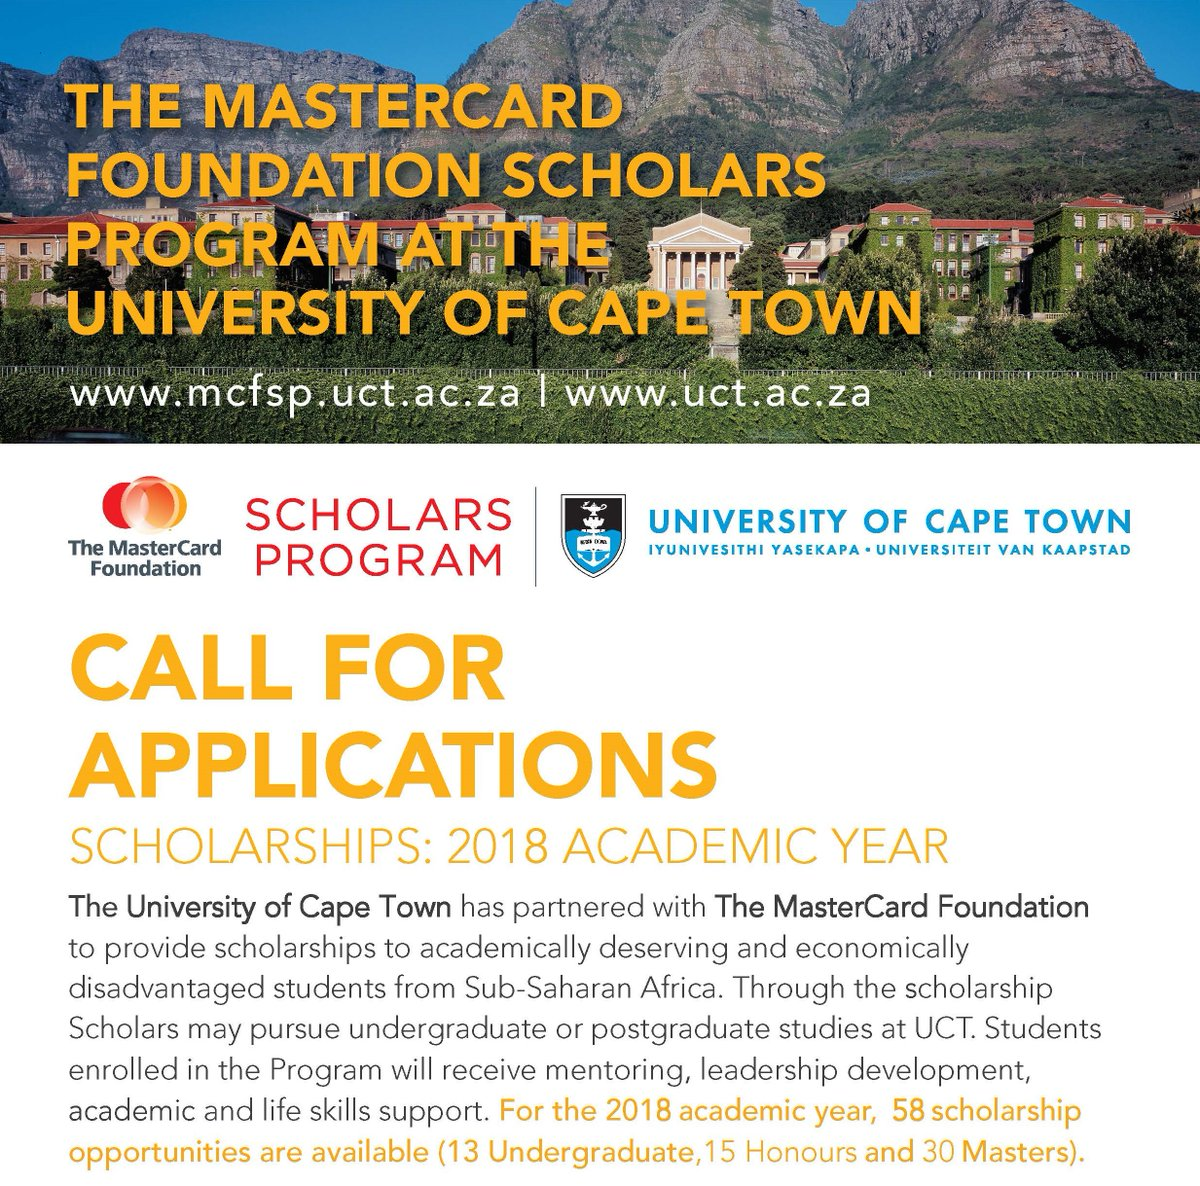 University of Cape Town MasterCard Foundation Scholars Program 2018 for study in South Africa (Fully Funded)